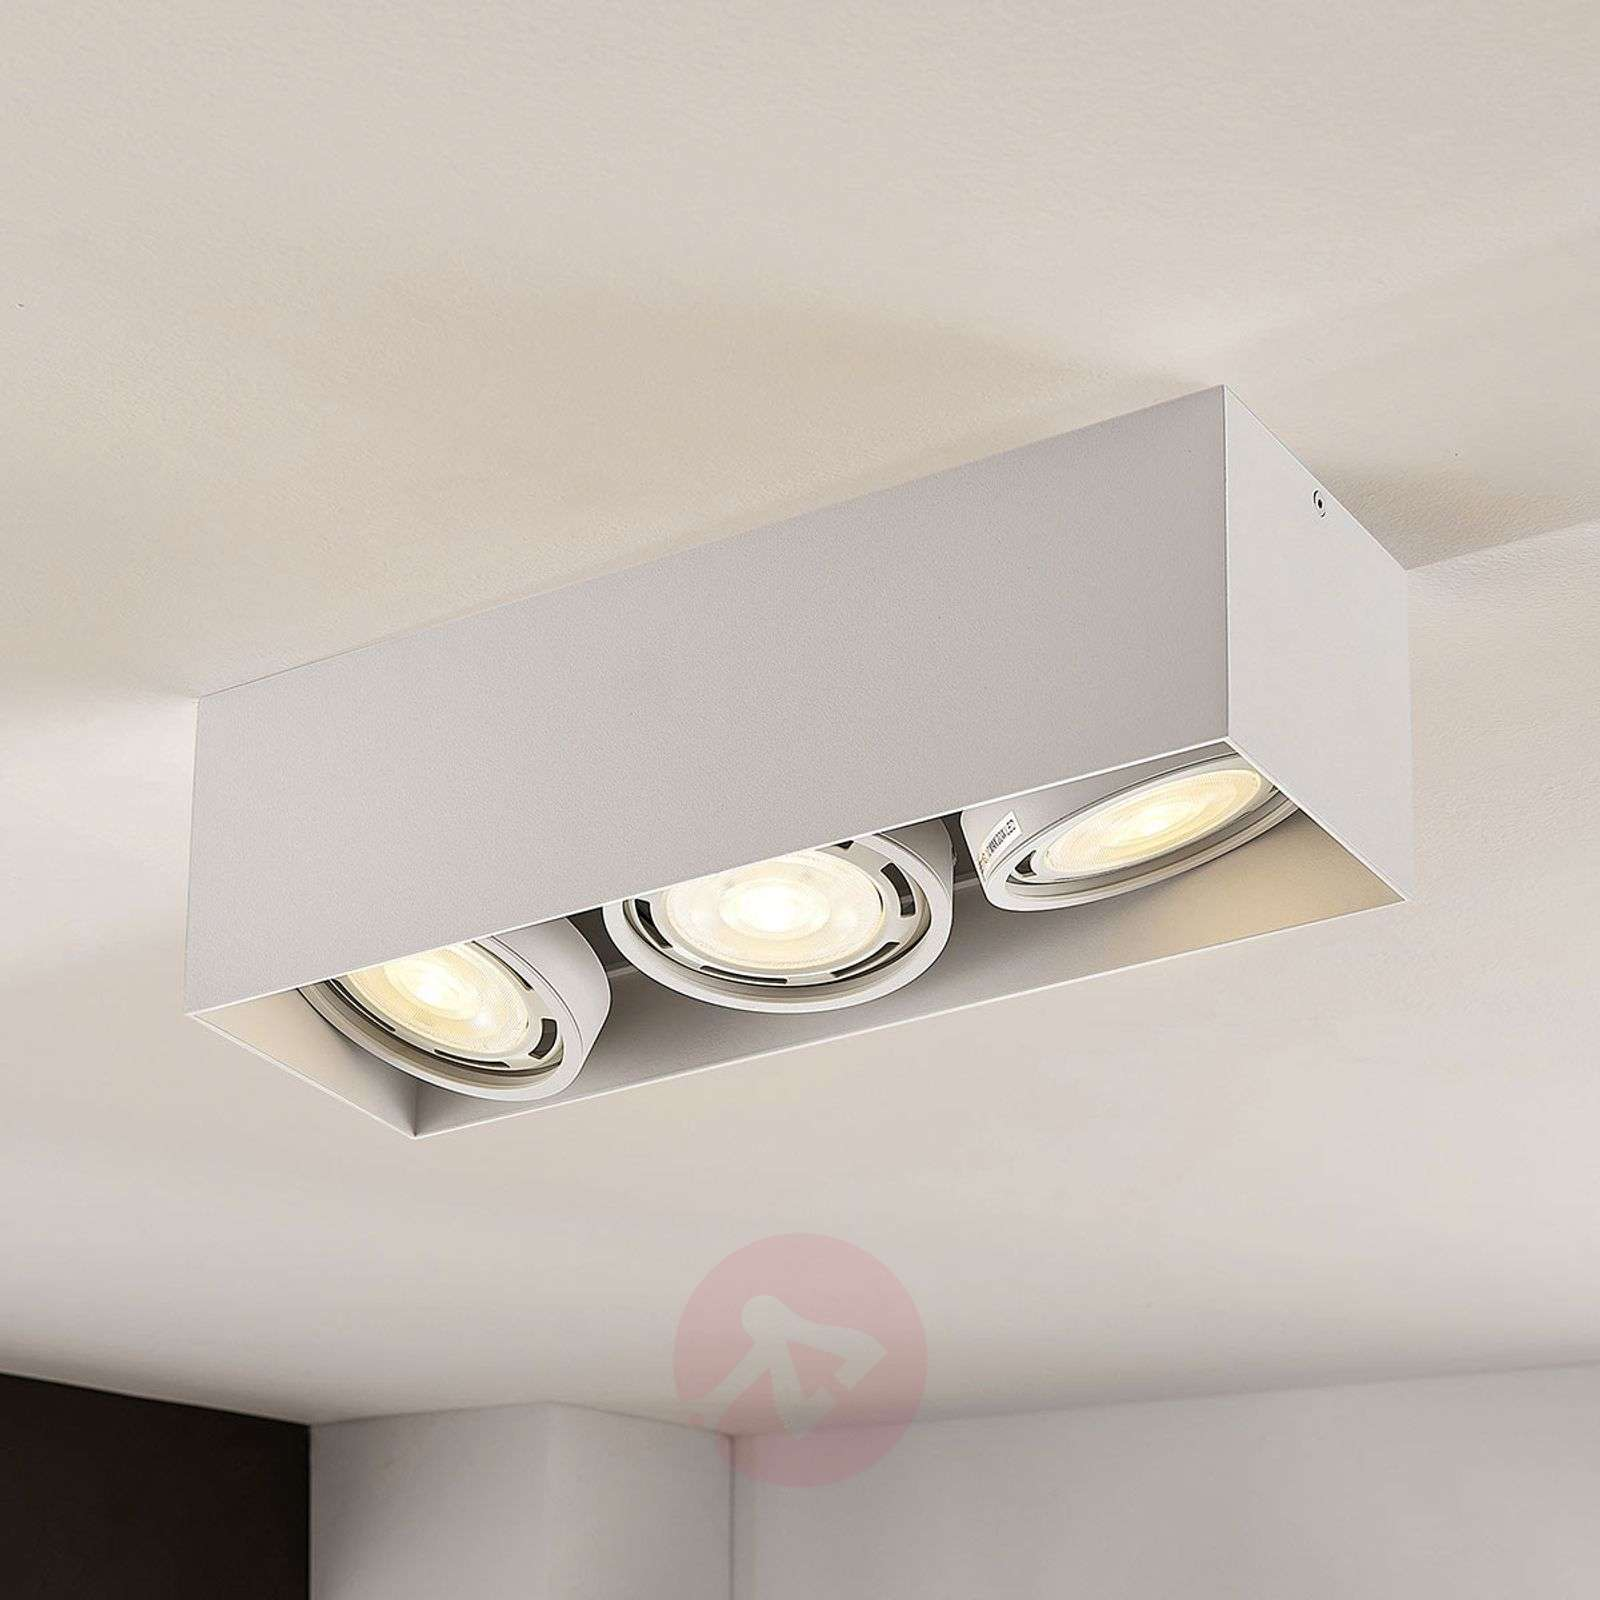 Downlight LED Rosalie, atenuable, 3 luces, blanco-9621911-02